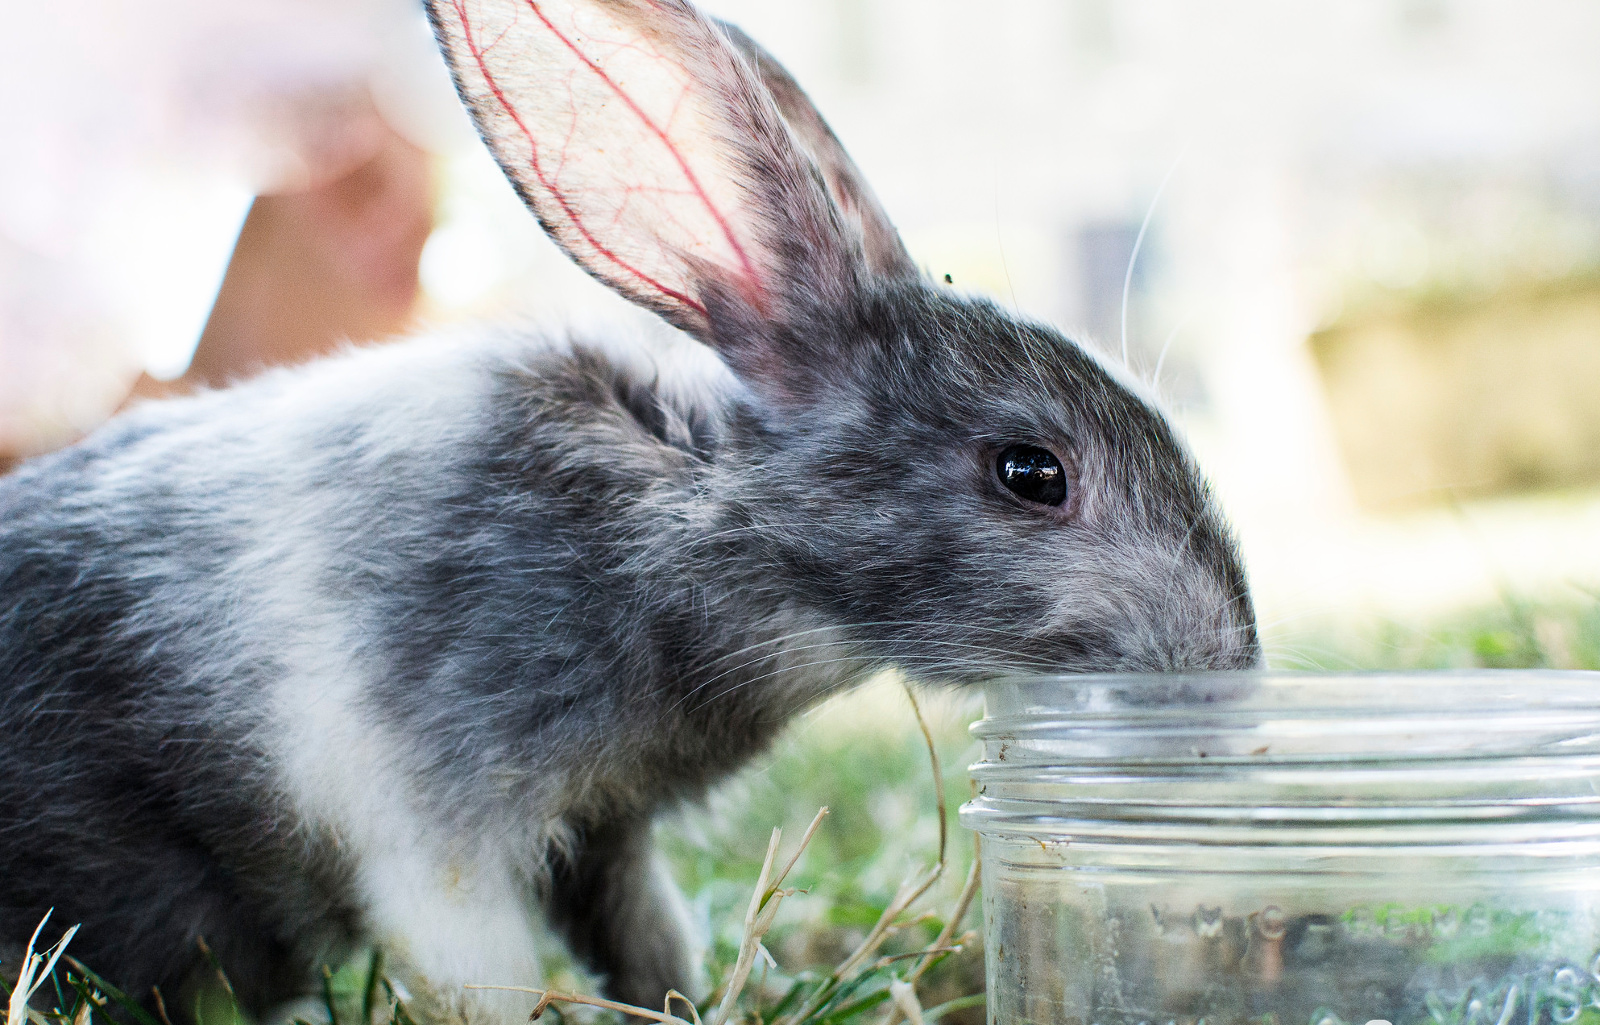 The Shocking Ways Your Cosmetics Might Be Harming Animals and How to Choose Better